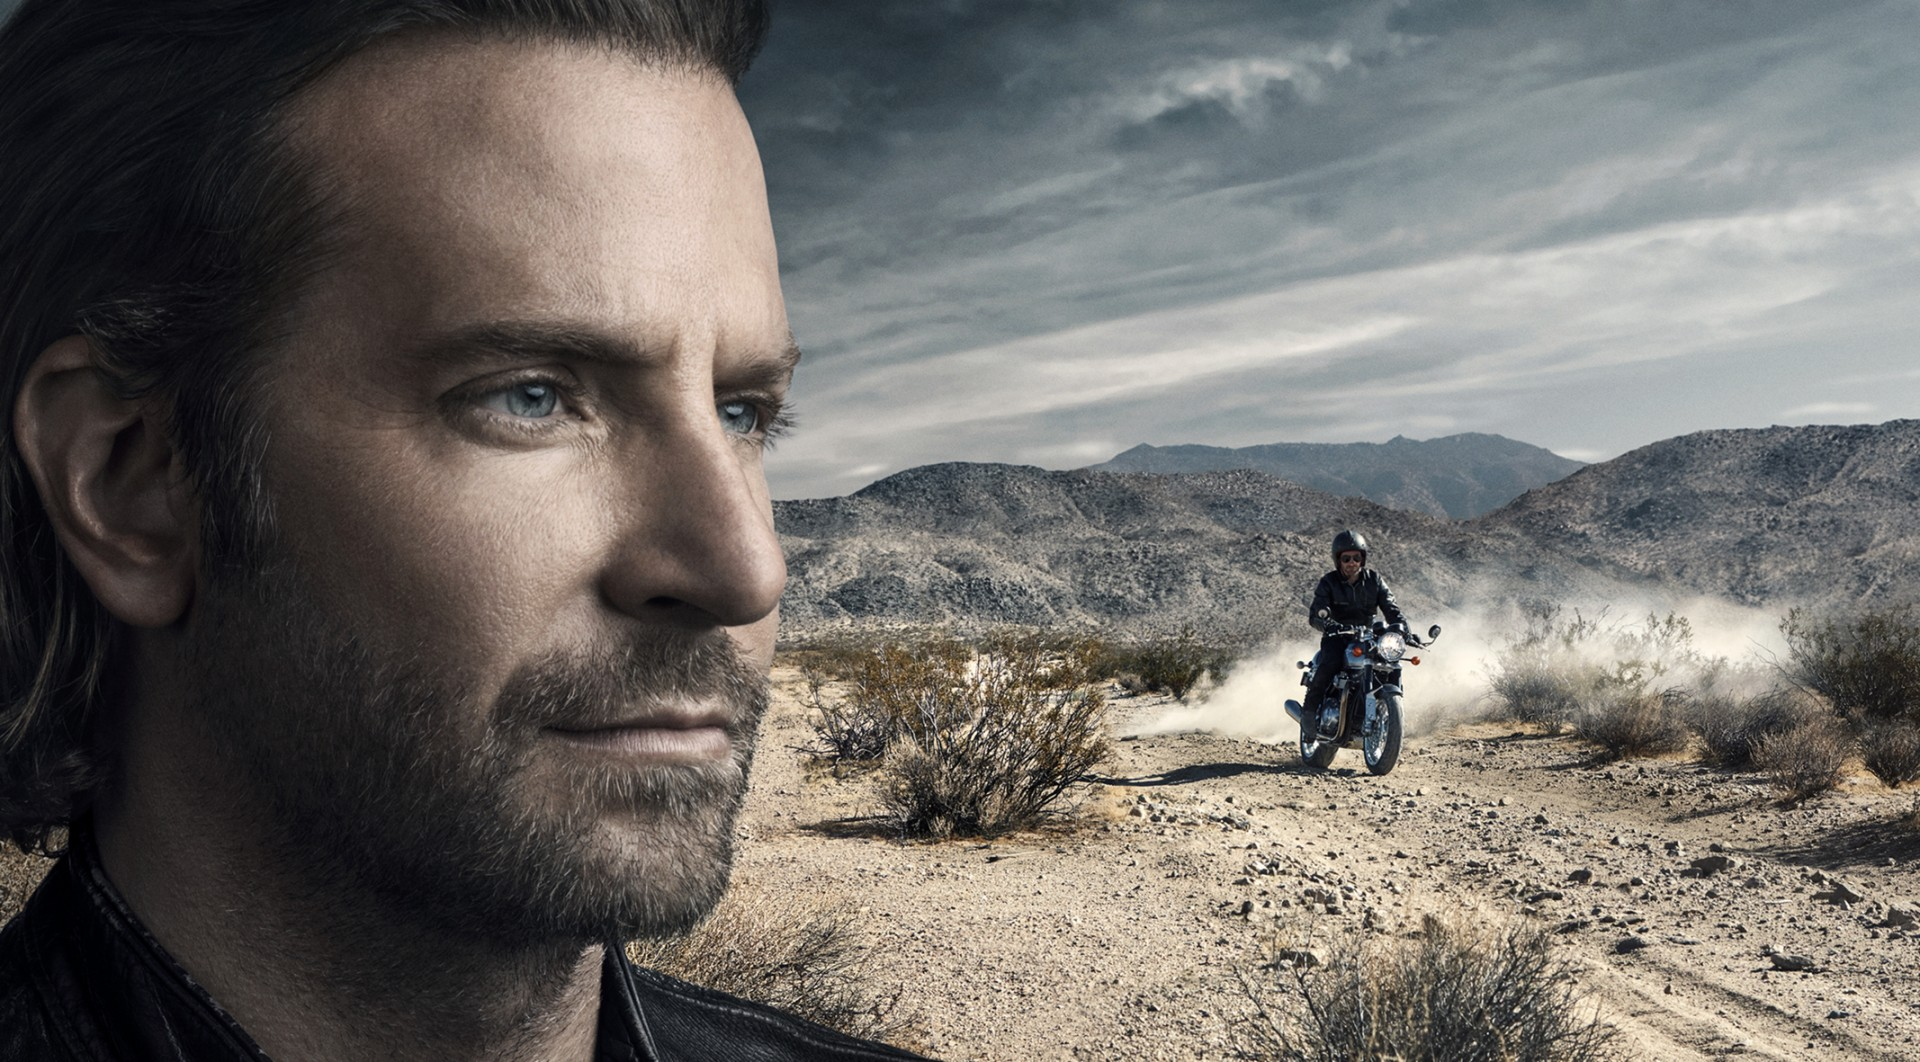 IWC_Bradley Cooper_Global Advertising Campaign_2